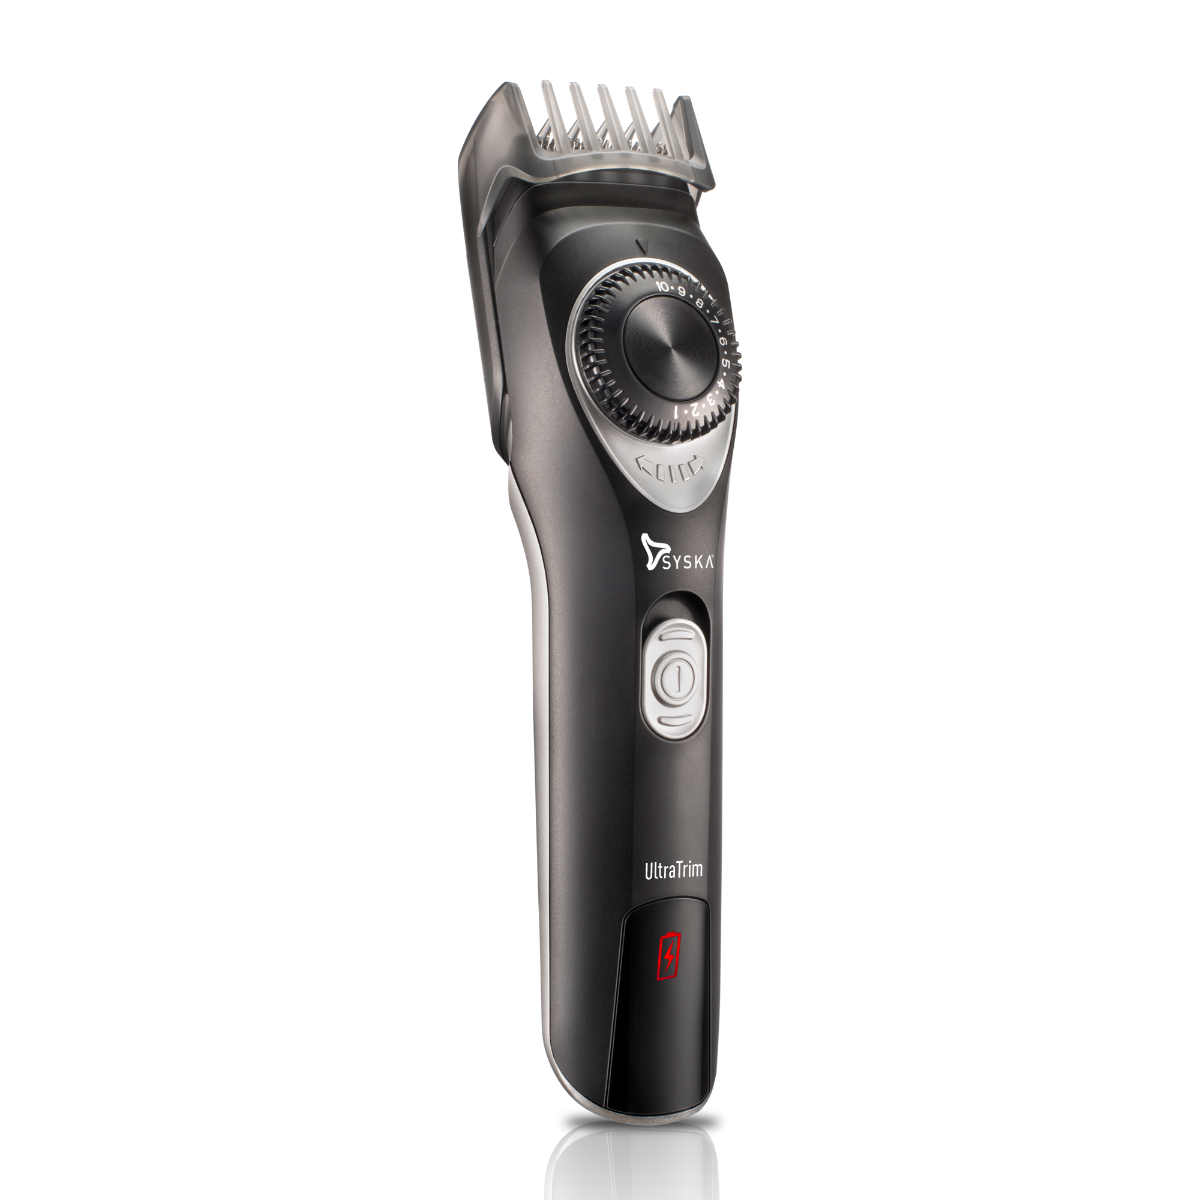 HT750 UltraTrim Cordless Trimmer for Men